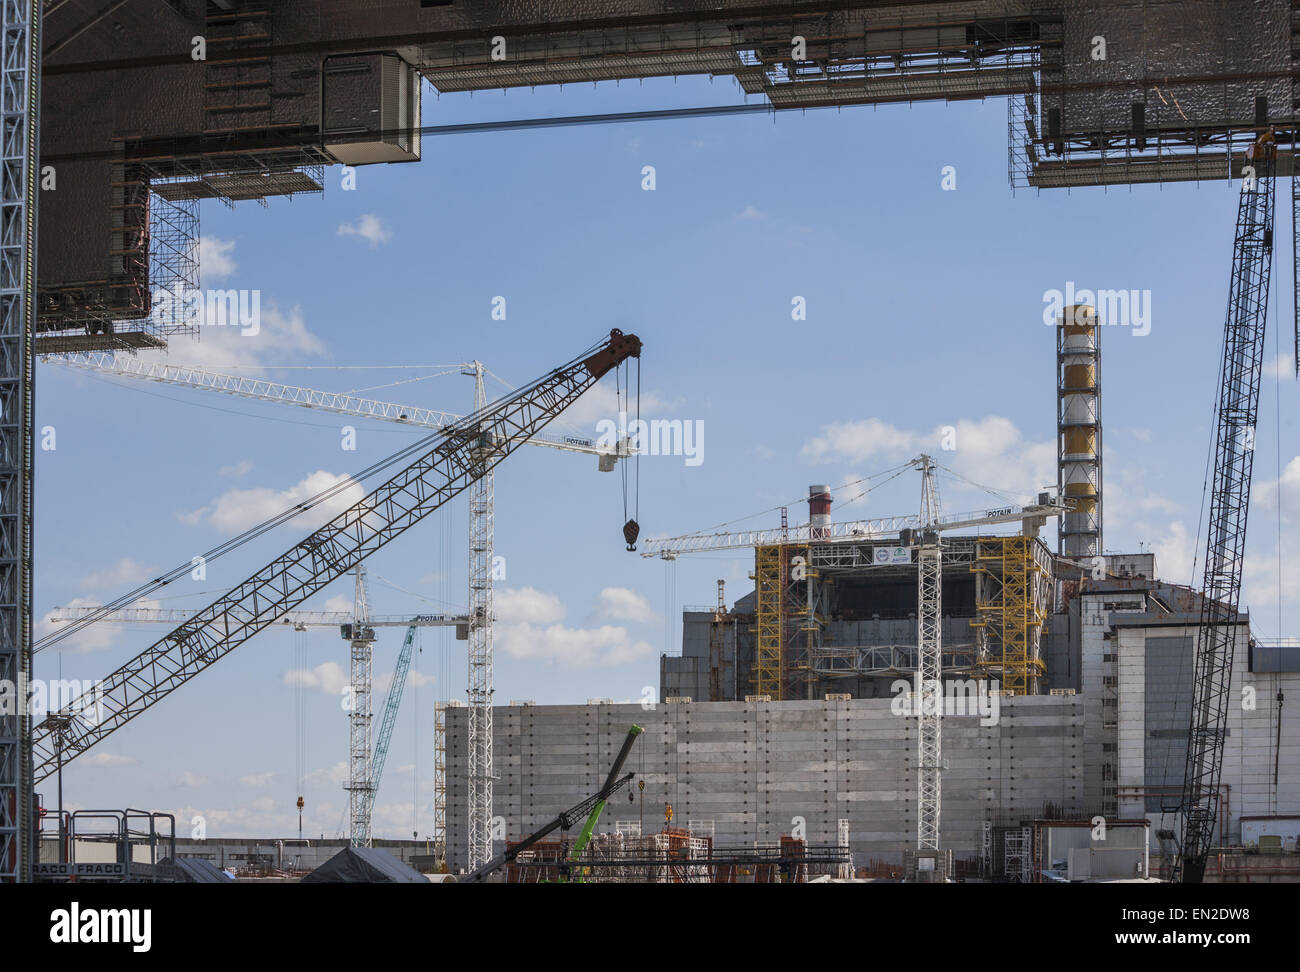 Chernobyl, Ukraine. 26th Aug, 2014. Construction of the huge dome over the Chernobyl nuclear reactor number 4 destroyed - Stock Image